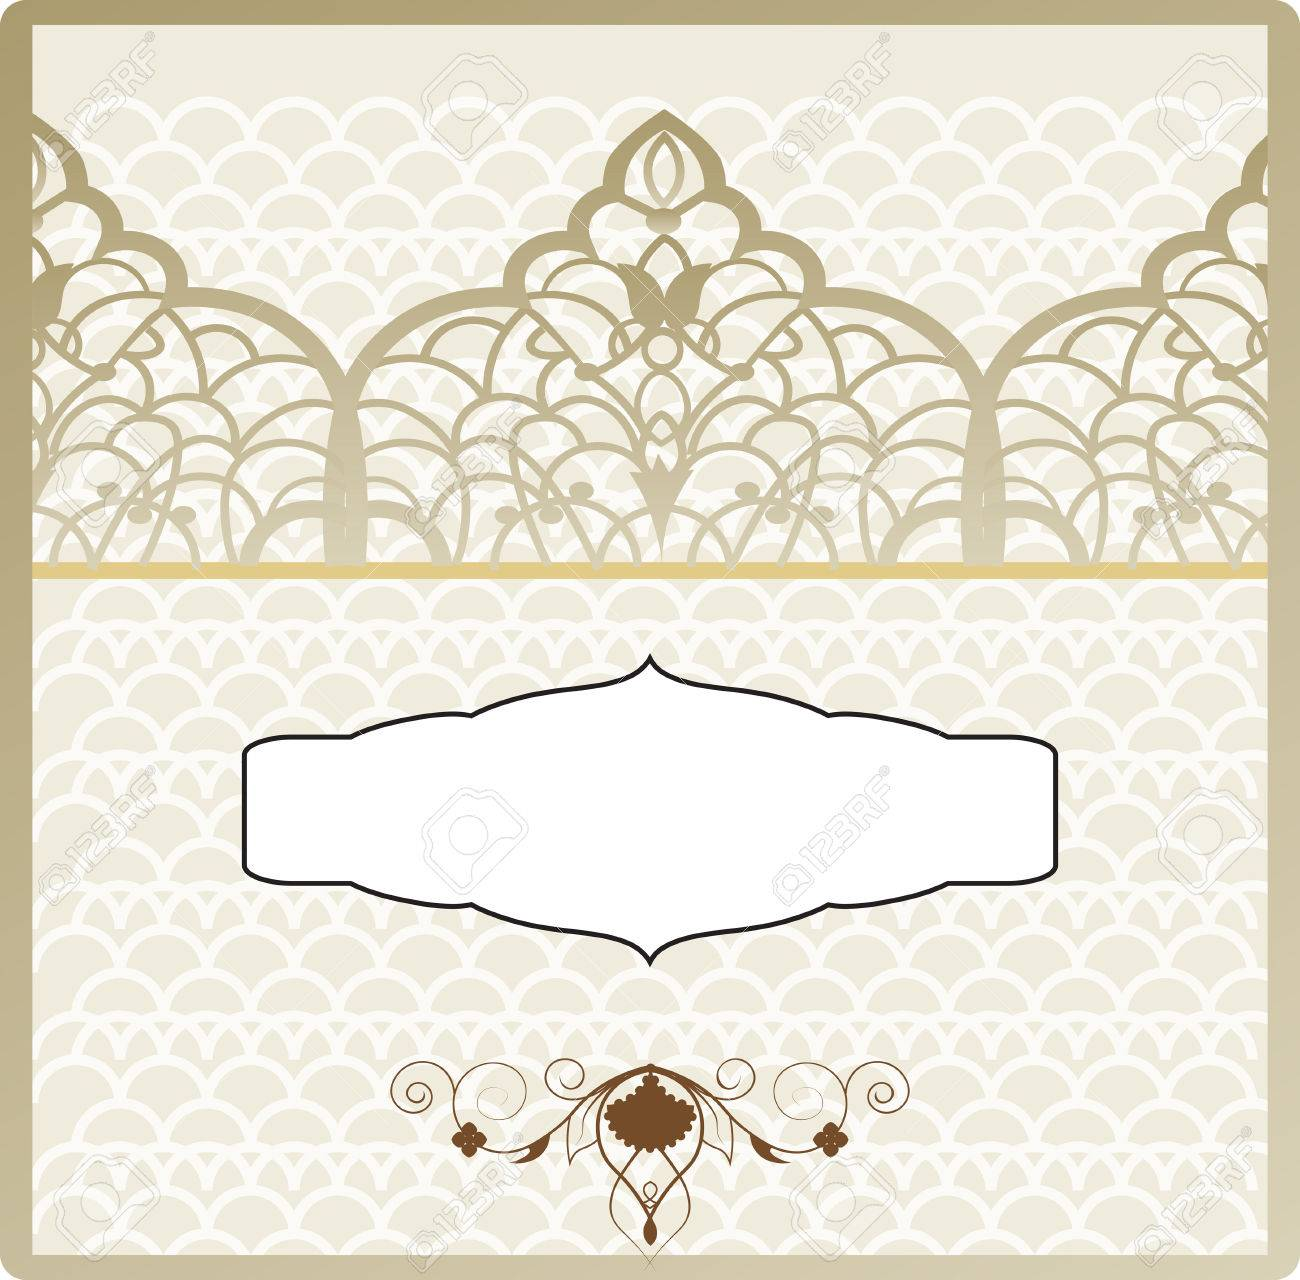 The Vintage Wedding Invitation In Ottoman Style The Arabic Patterns